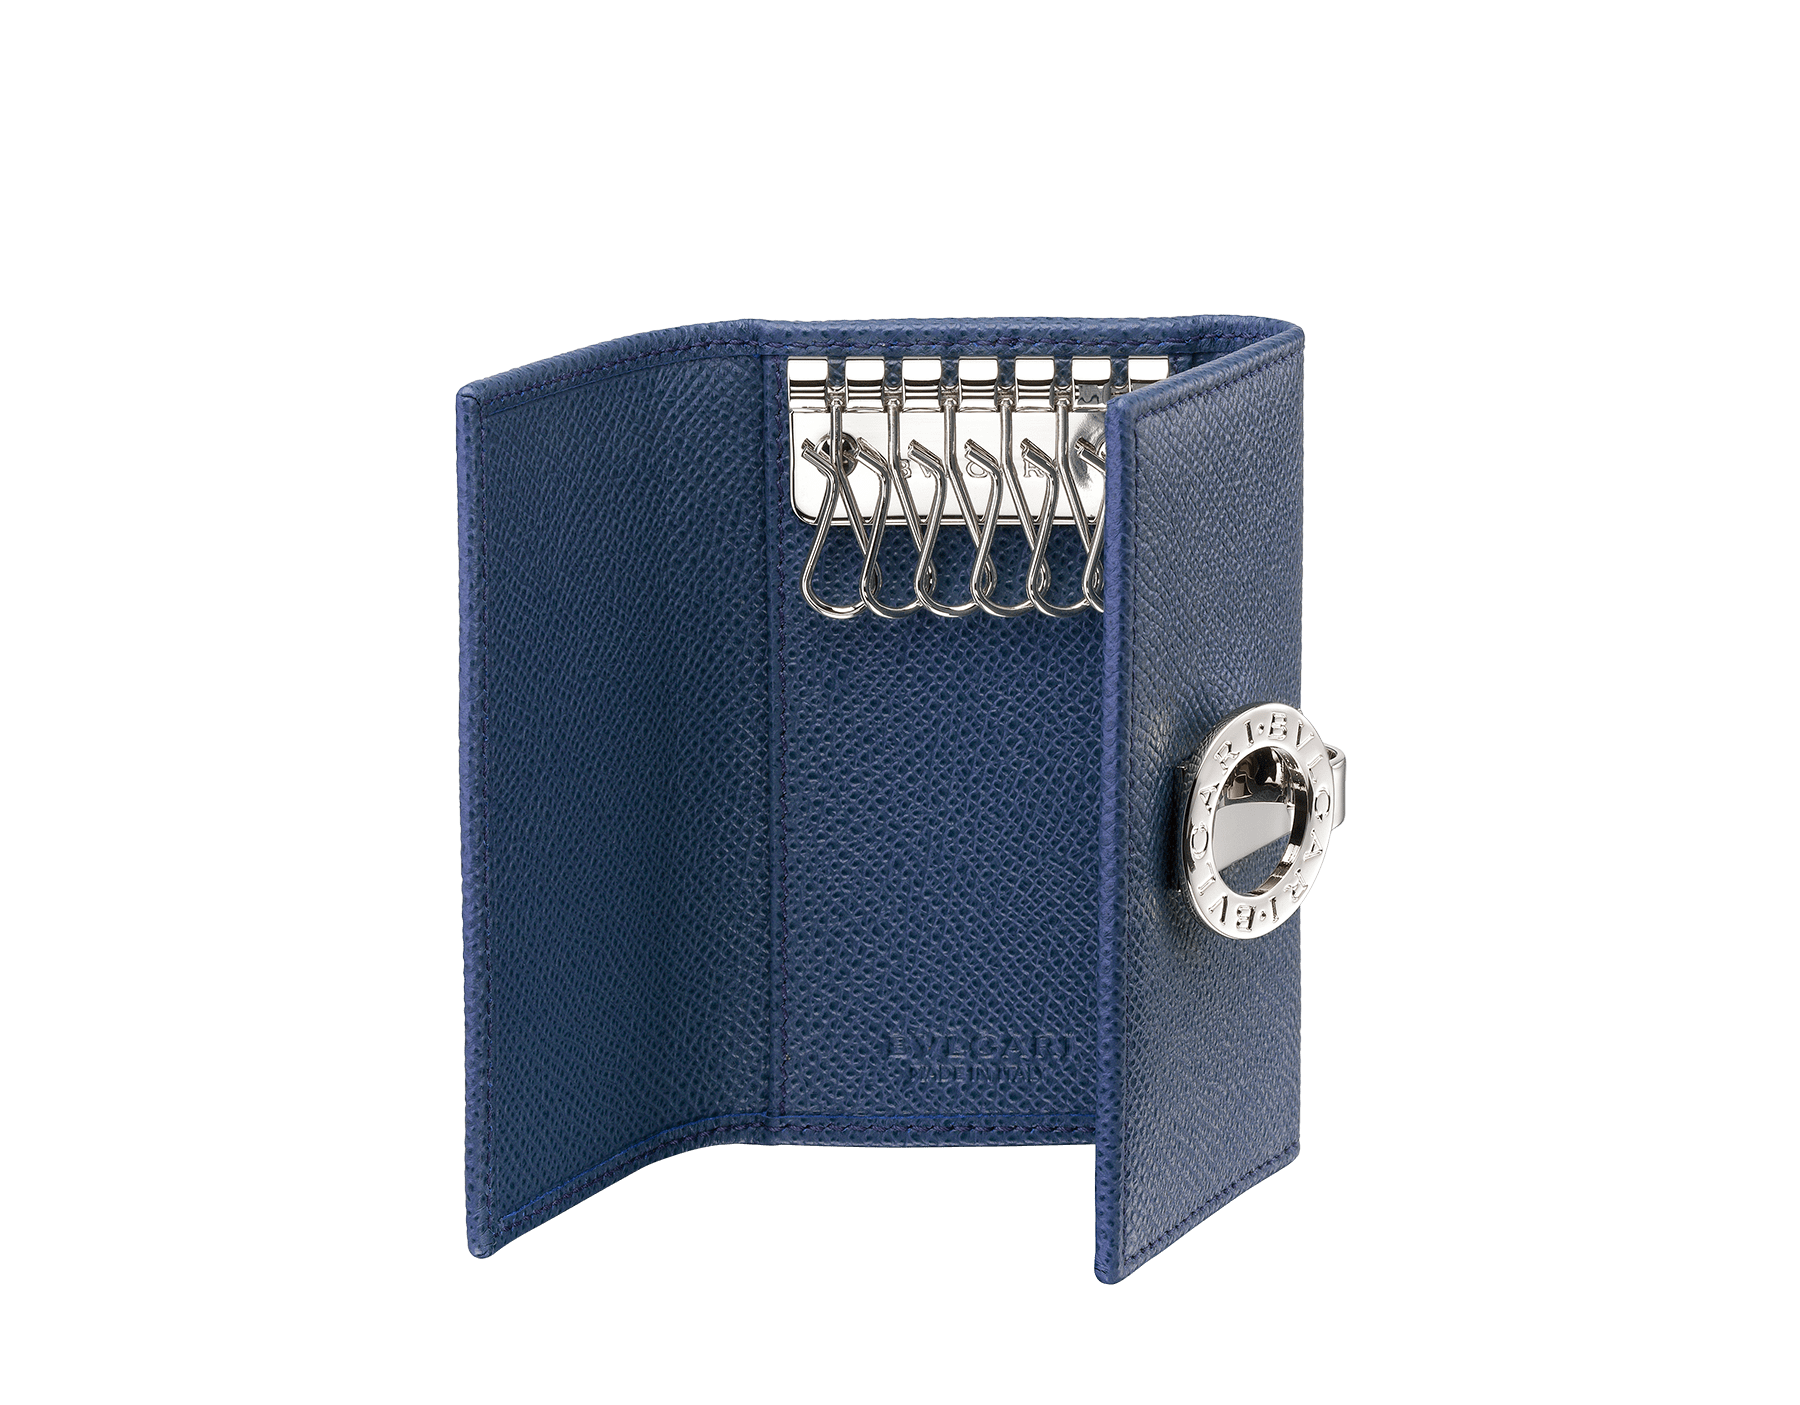 Small keyholder in denim sapphire grain calf leather and bordeaux nappa lining. Iconic brass palladium plated clip featuring the BVLGARI BVLGARI motif. 286891 image 2